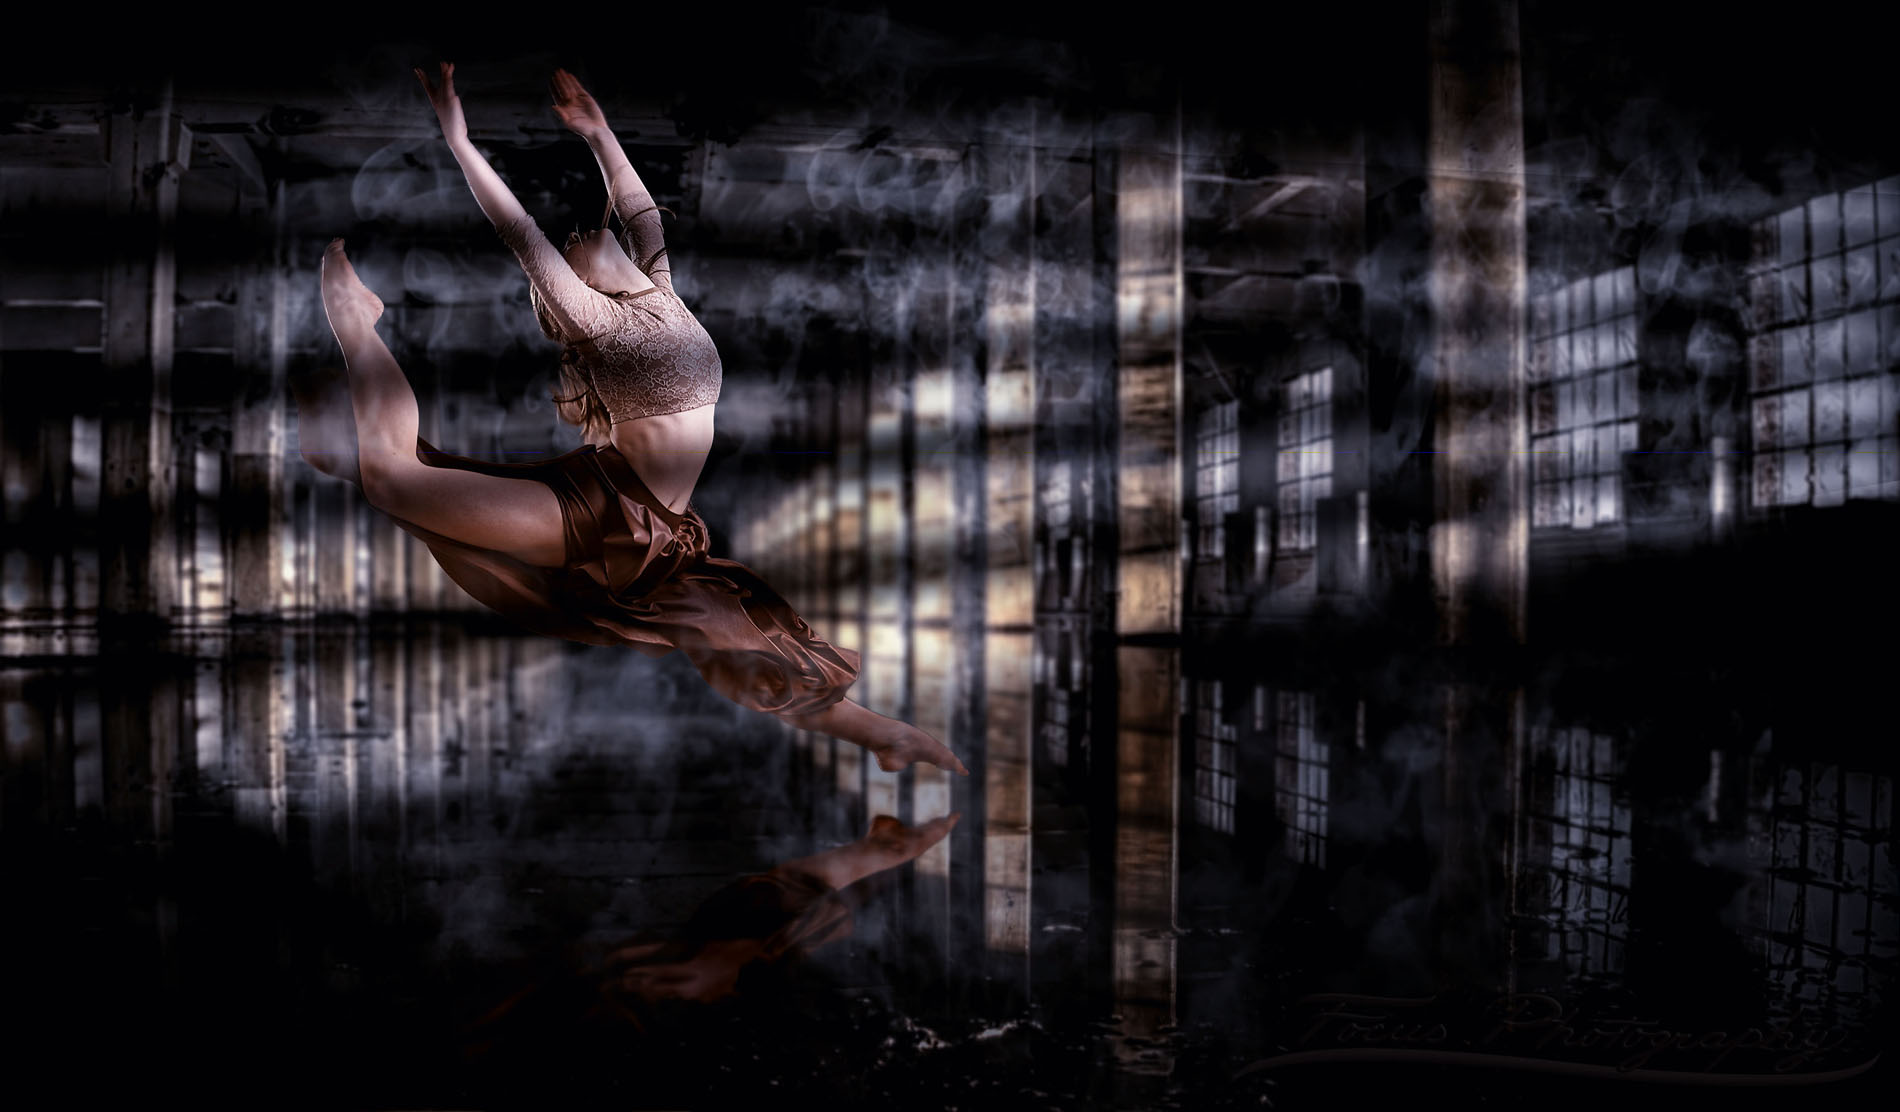 dancer leaps over water in warehouse but photographed in senior photography studio